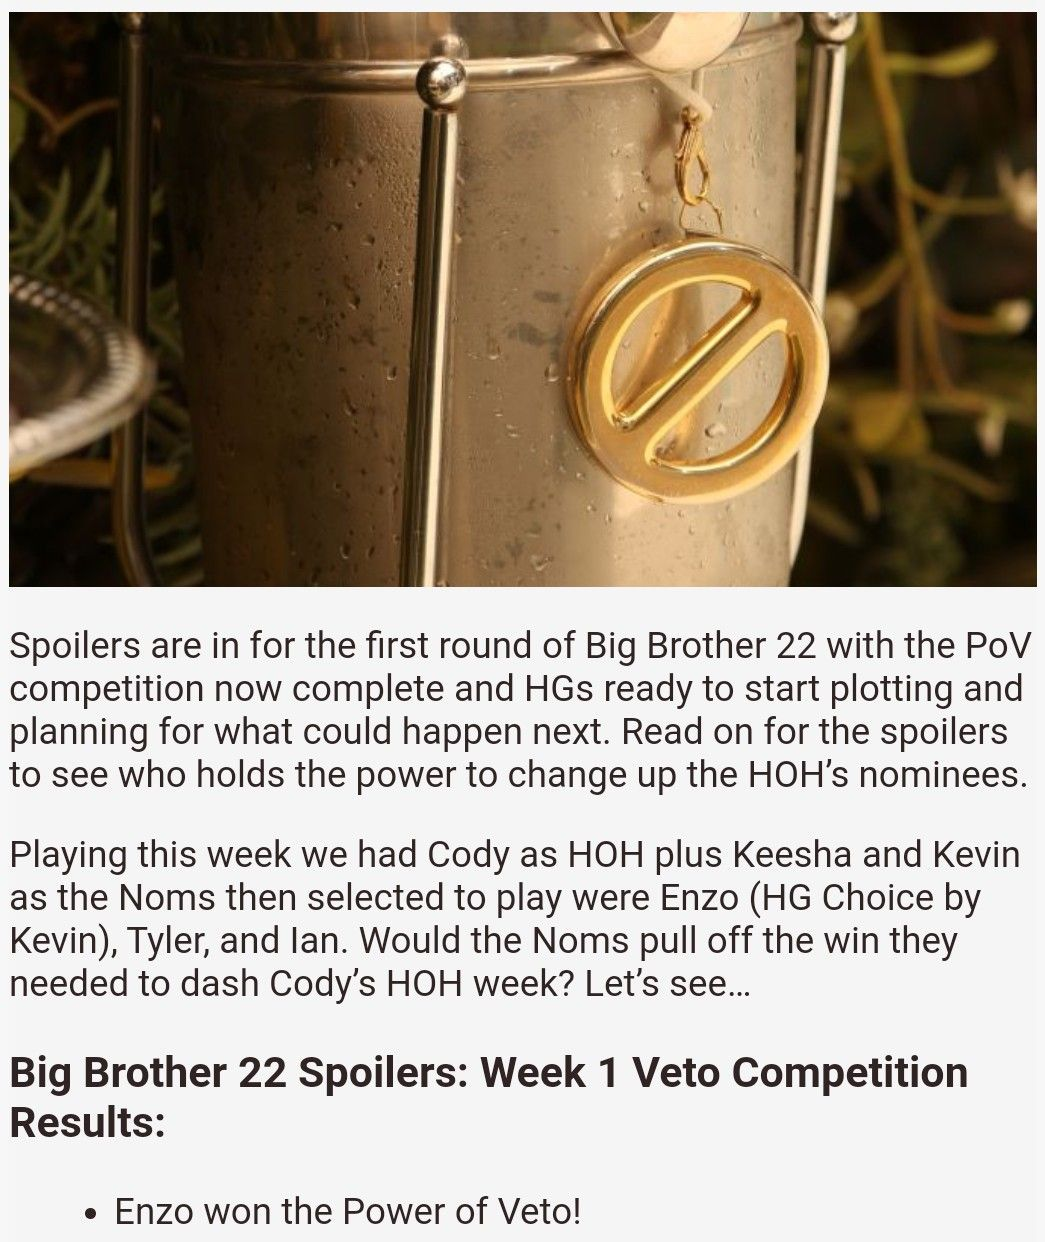 Pin By Hoff On Big Brother 22 Allstars In 2020 Big Brother 20 Big Brother Gold Rings